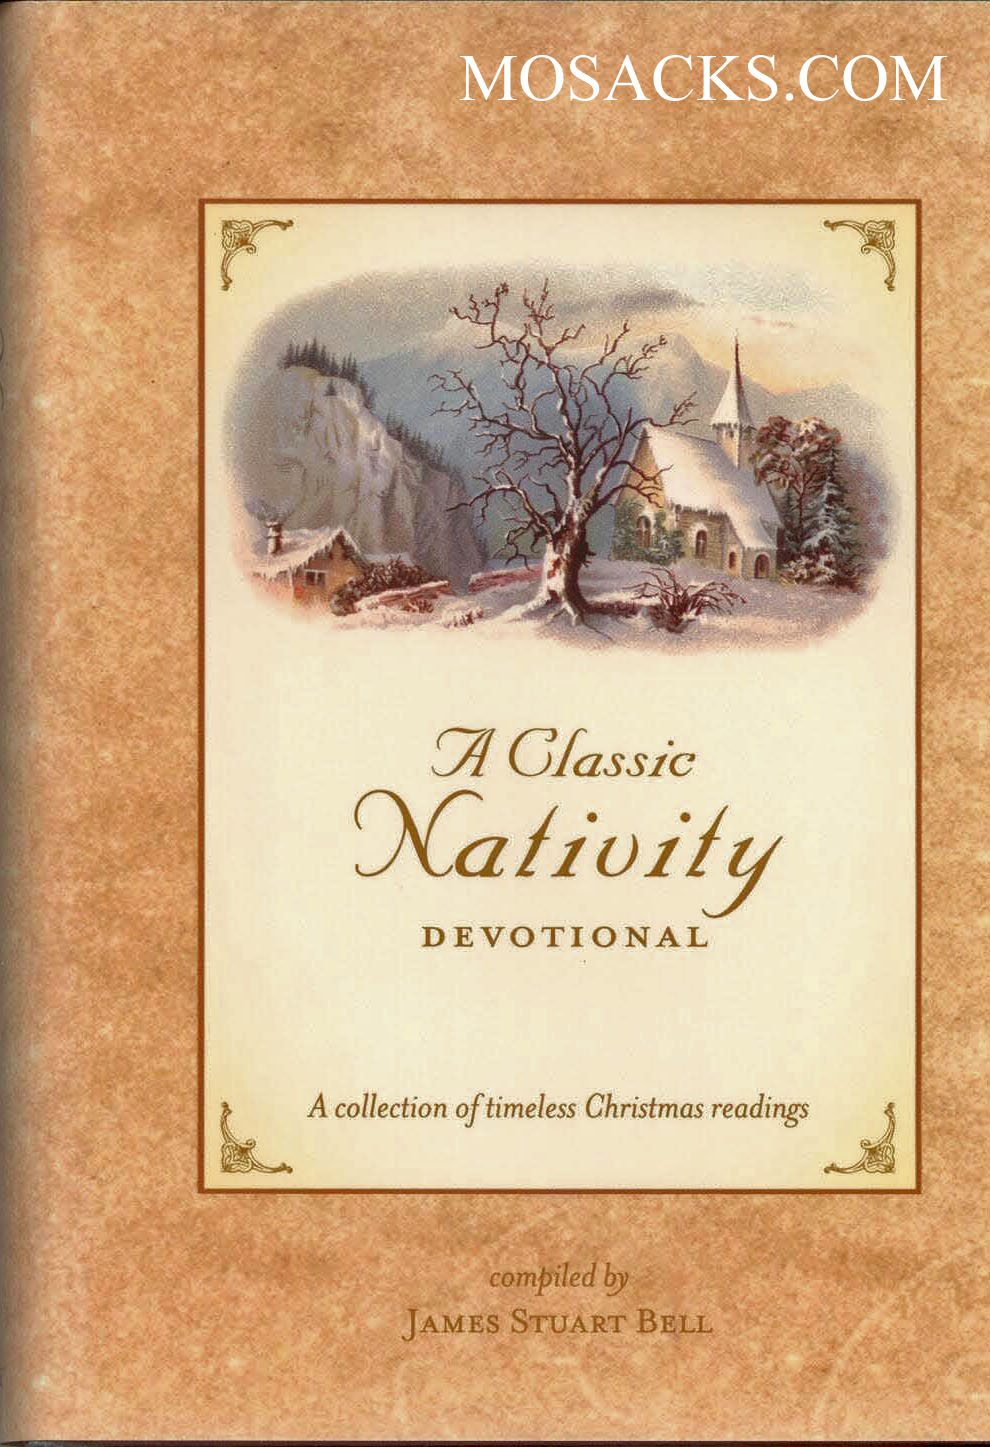 A Classic Nativity Devotional compiled by James Stuart Bell